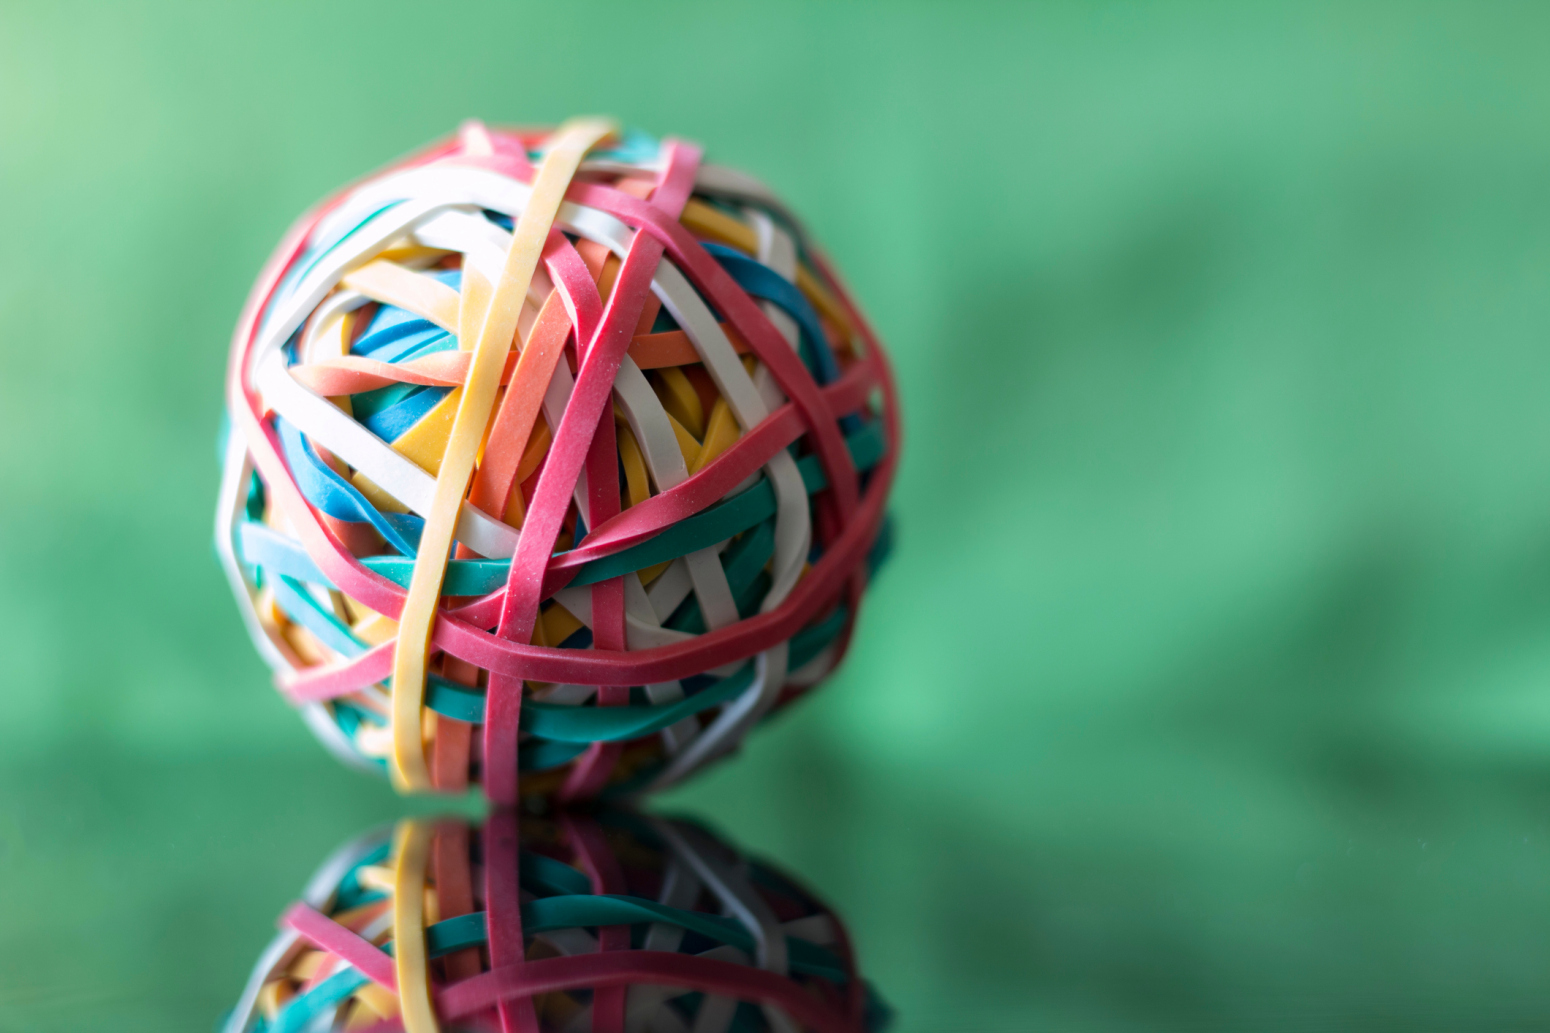 Close Up Of Ball Of Rubber Bands